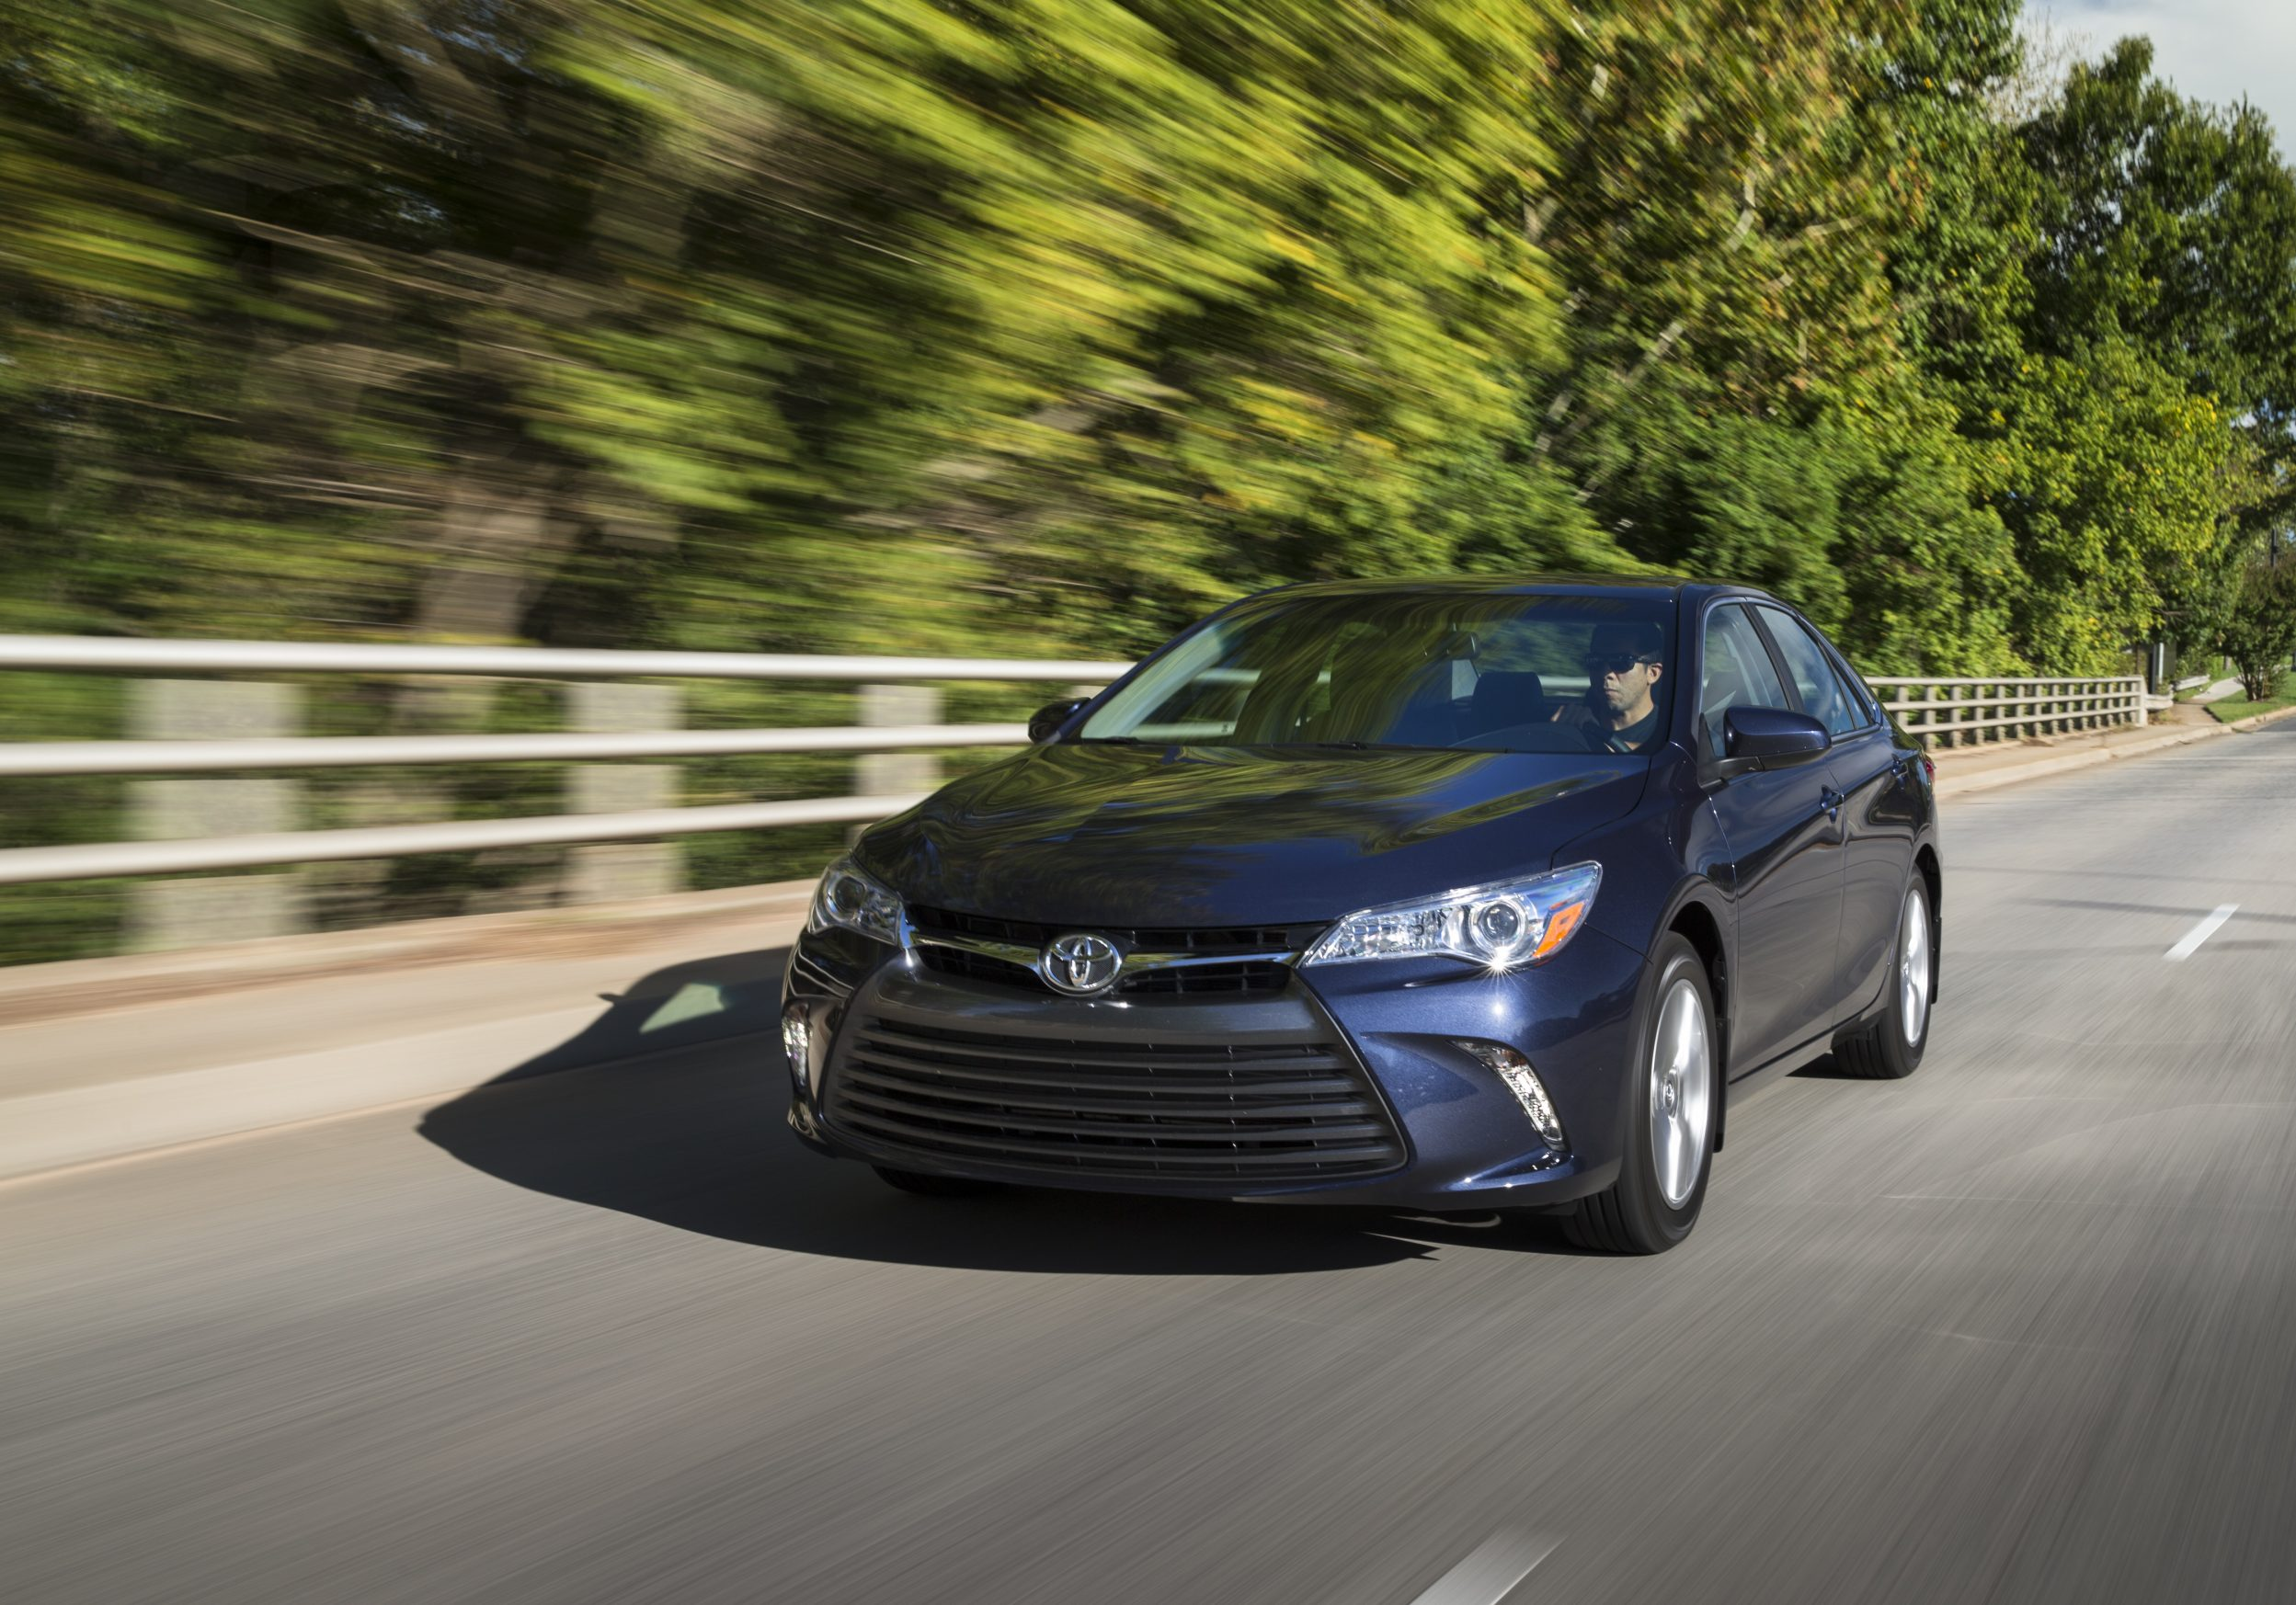 A Foul Wind Blows    From the Toyota Camry's Dash Vents